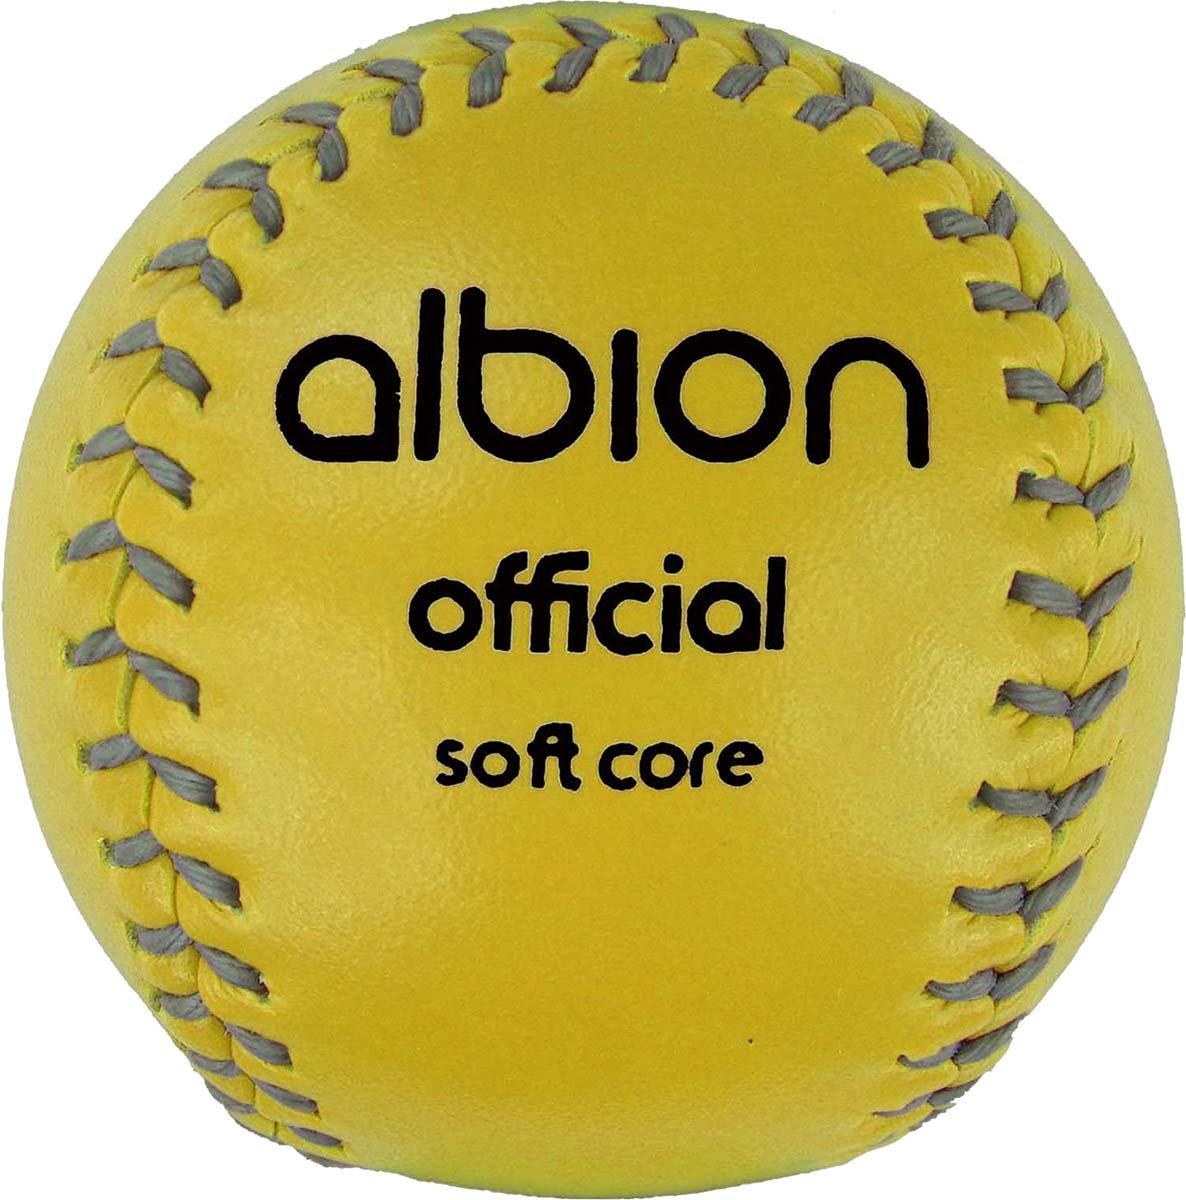 Only Cricket Albion Official Soft Core Rounders Ball Yellow